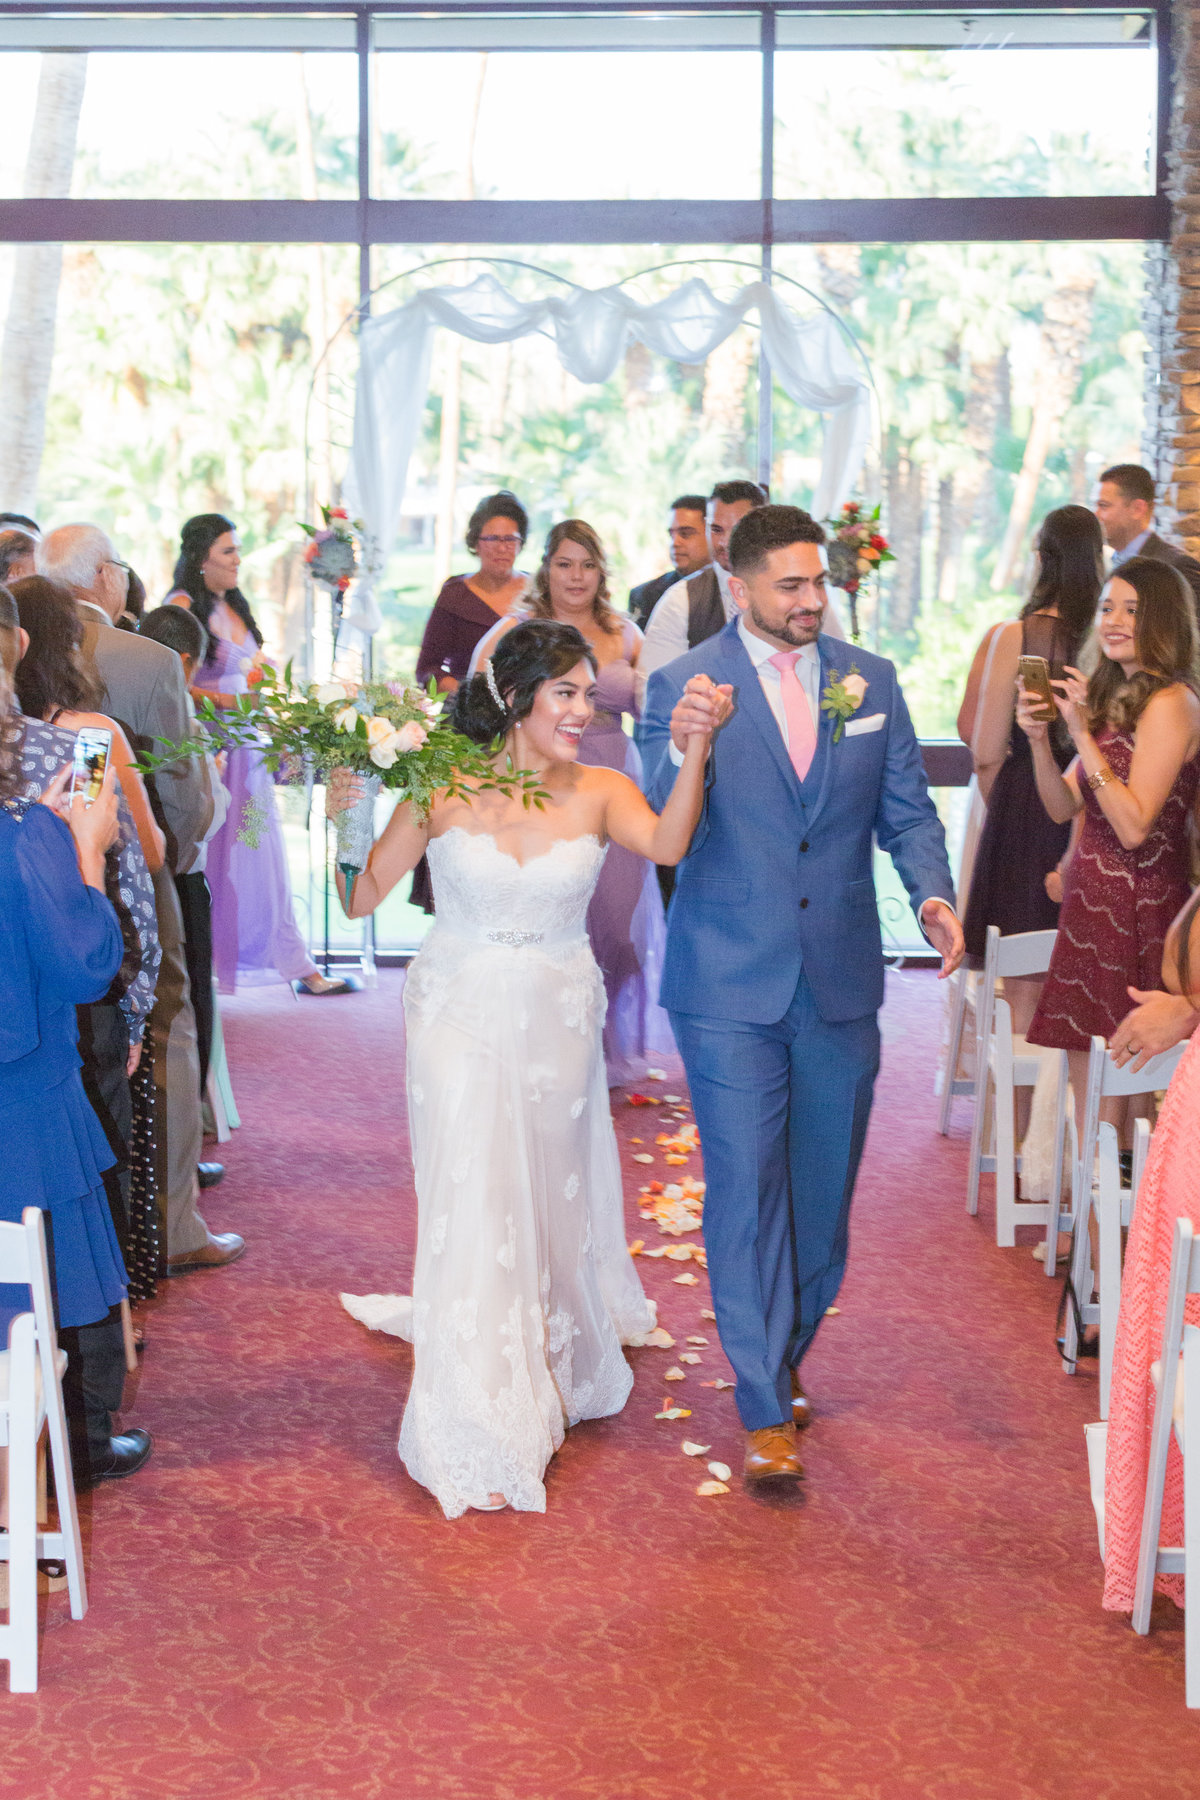 Erica Mendenhall Photography_Indian Wells Wedding_MP_0426web